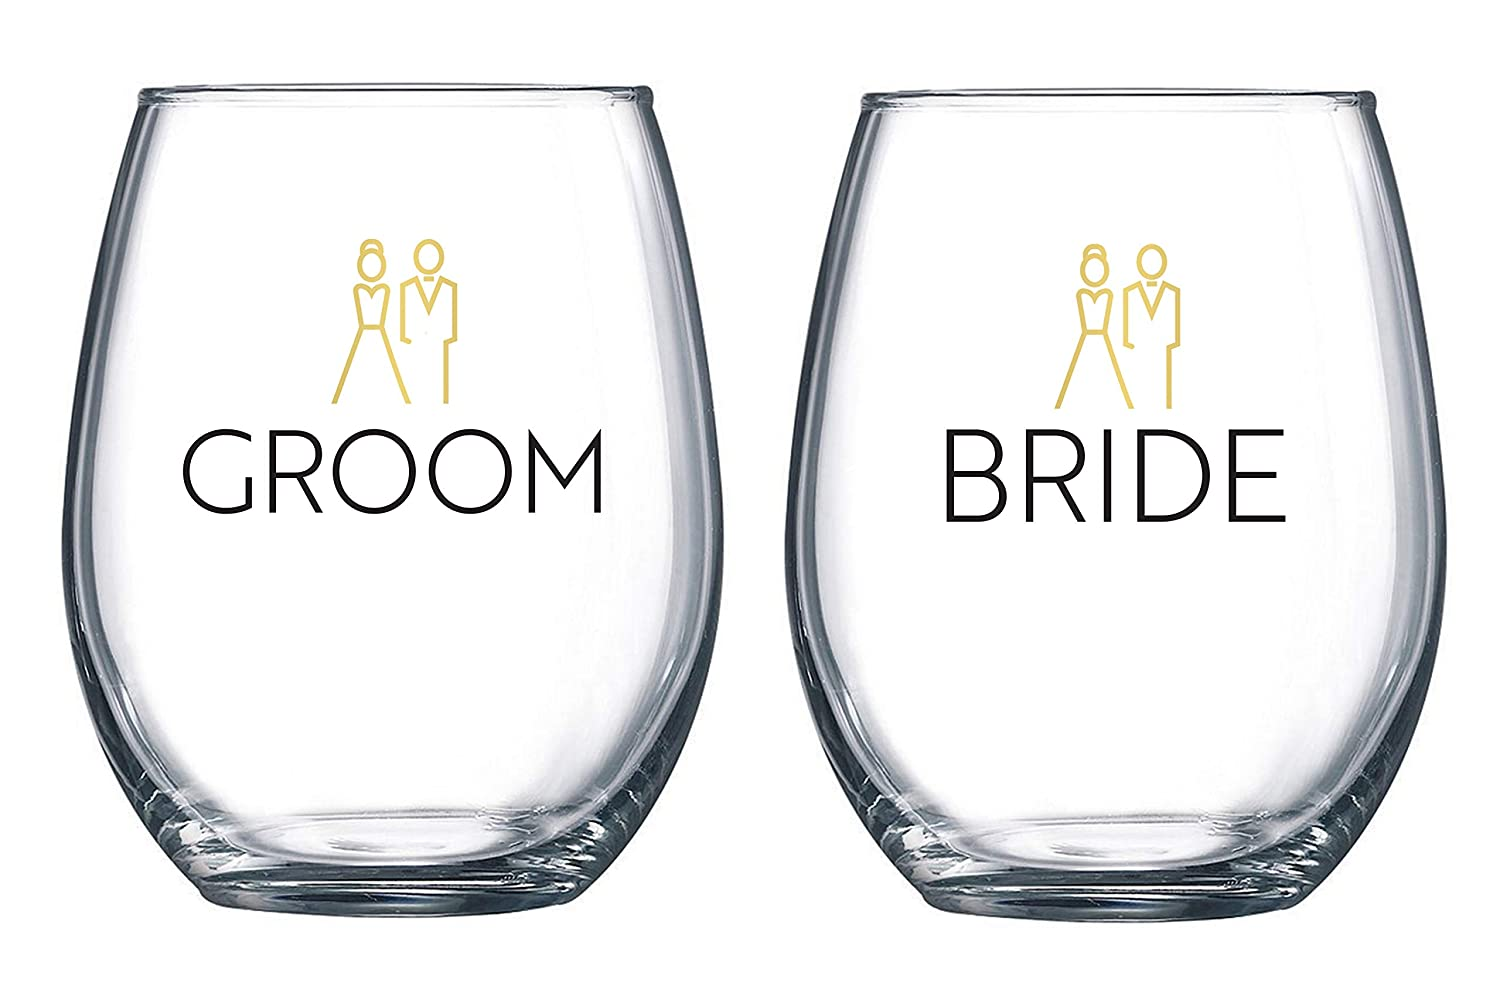 Bride and Groom Stemless Wine Glass Set - 20 oz each - Wedding Shower Gift | Just Engaged | Engagement | Anniversary